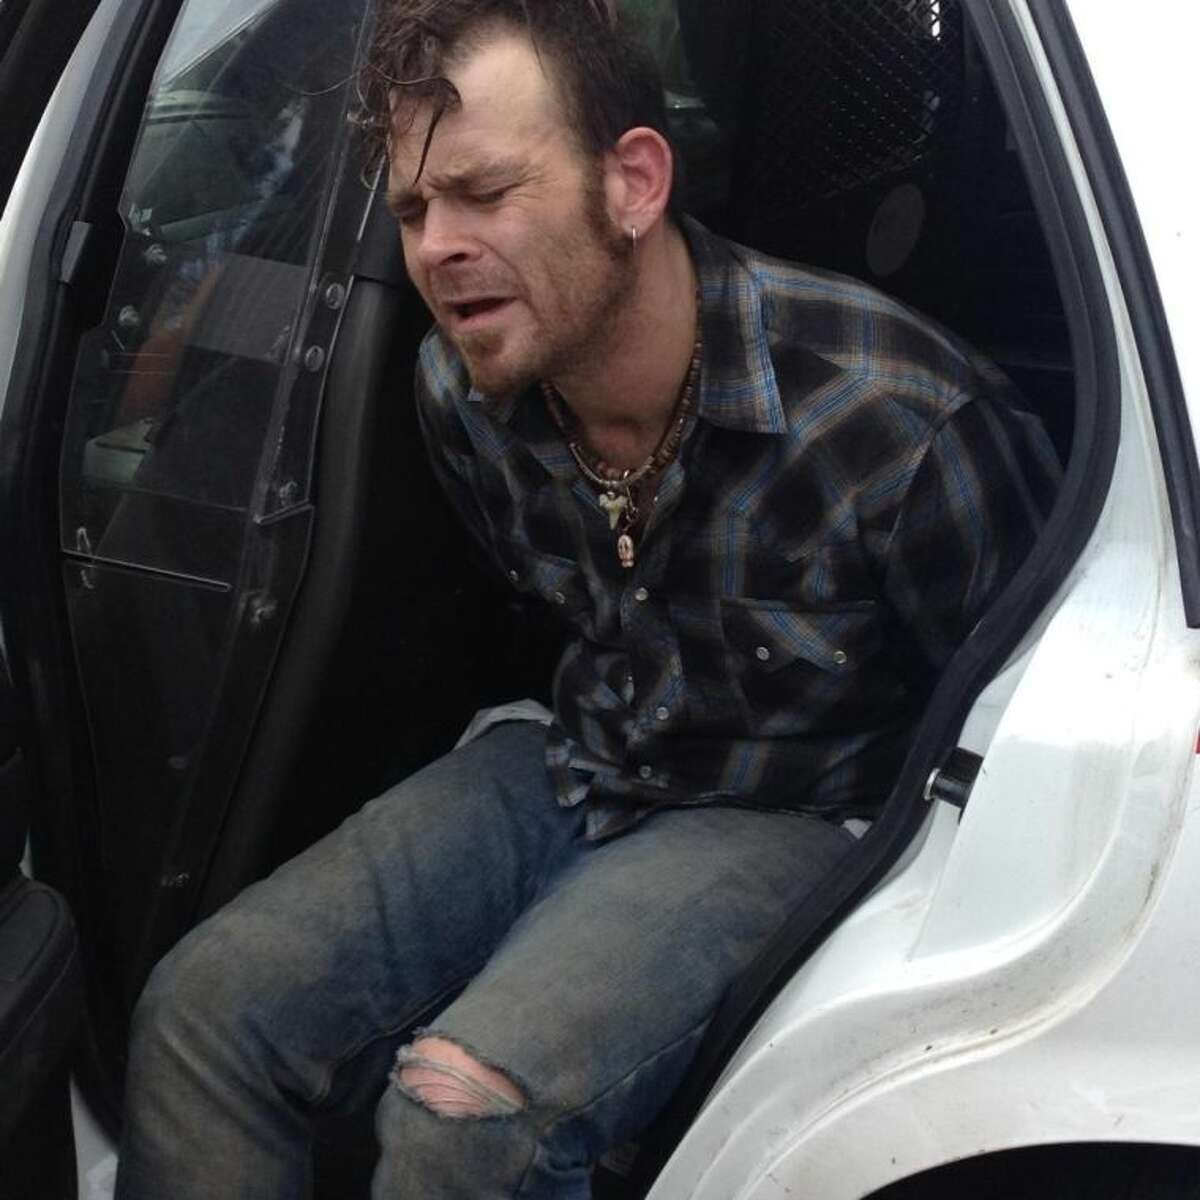 Deputies were able to arrest Nicholas Anthony Joy, 35, from Dayton after being positively identified by the victim.